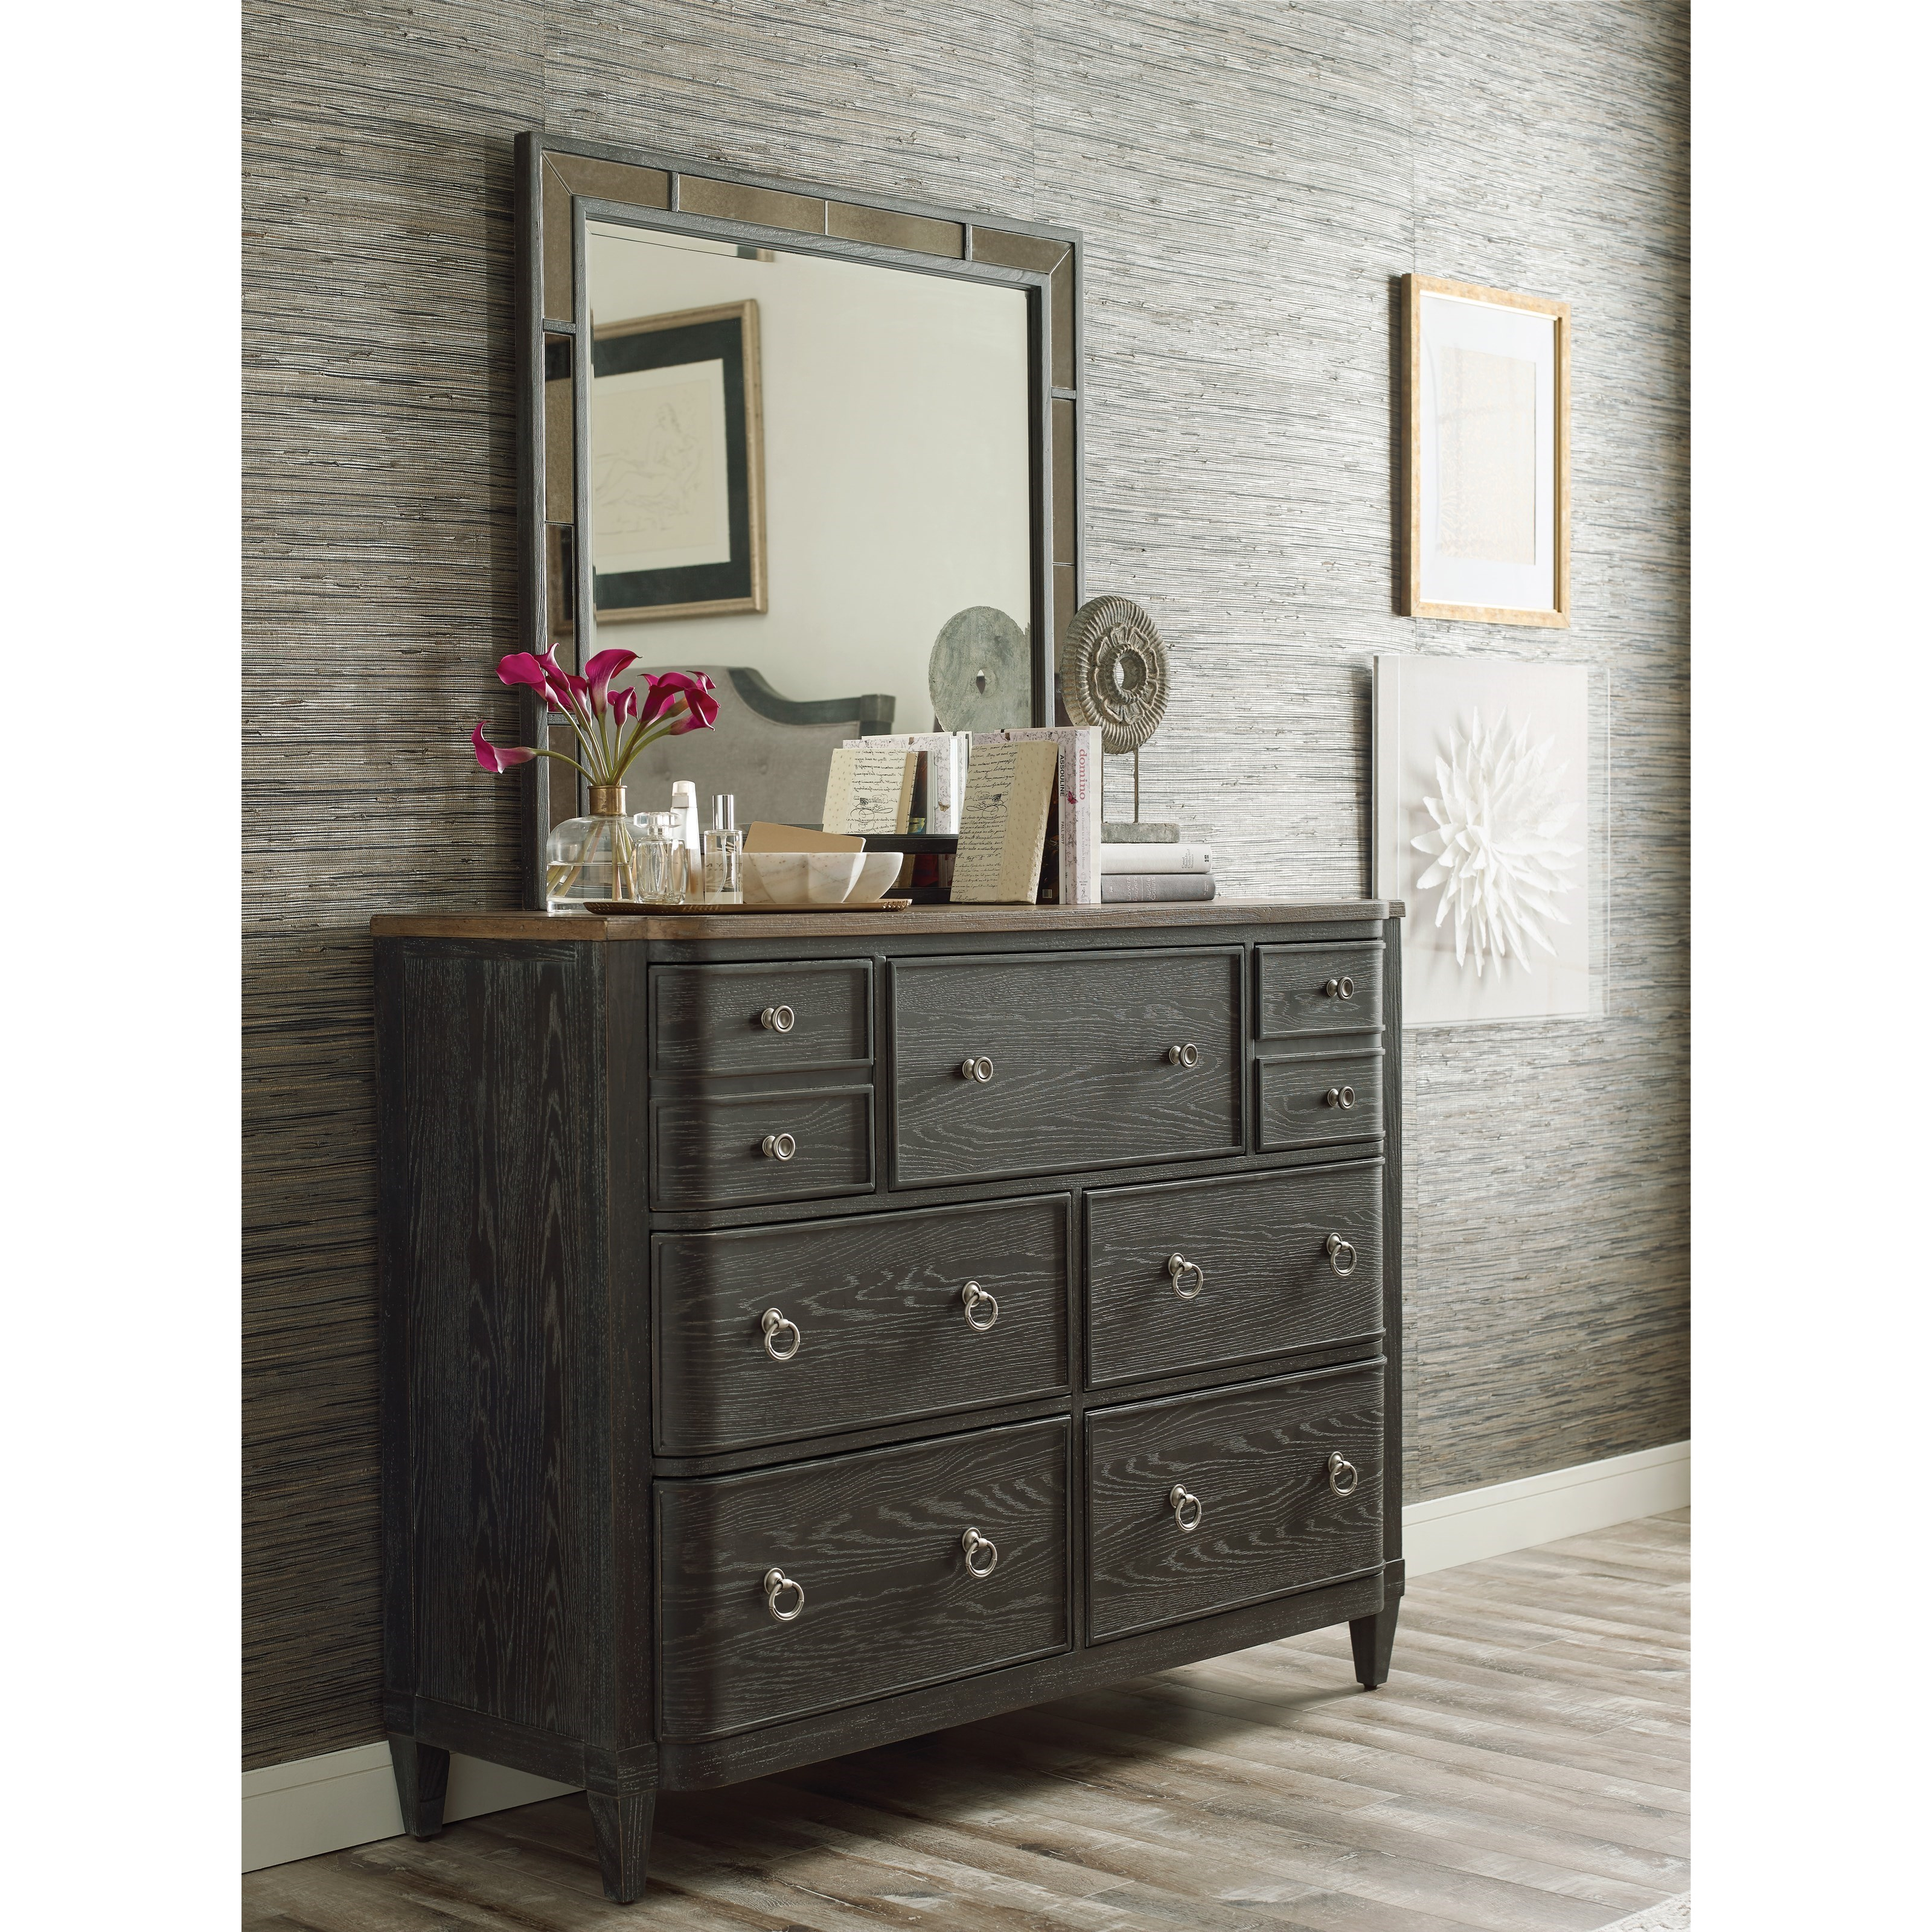 Ardennes Dresser and Mirror Set by American Drew at Stoney Creek Furniture